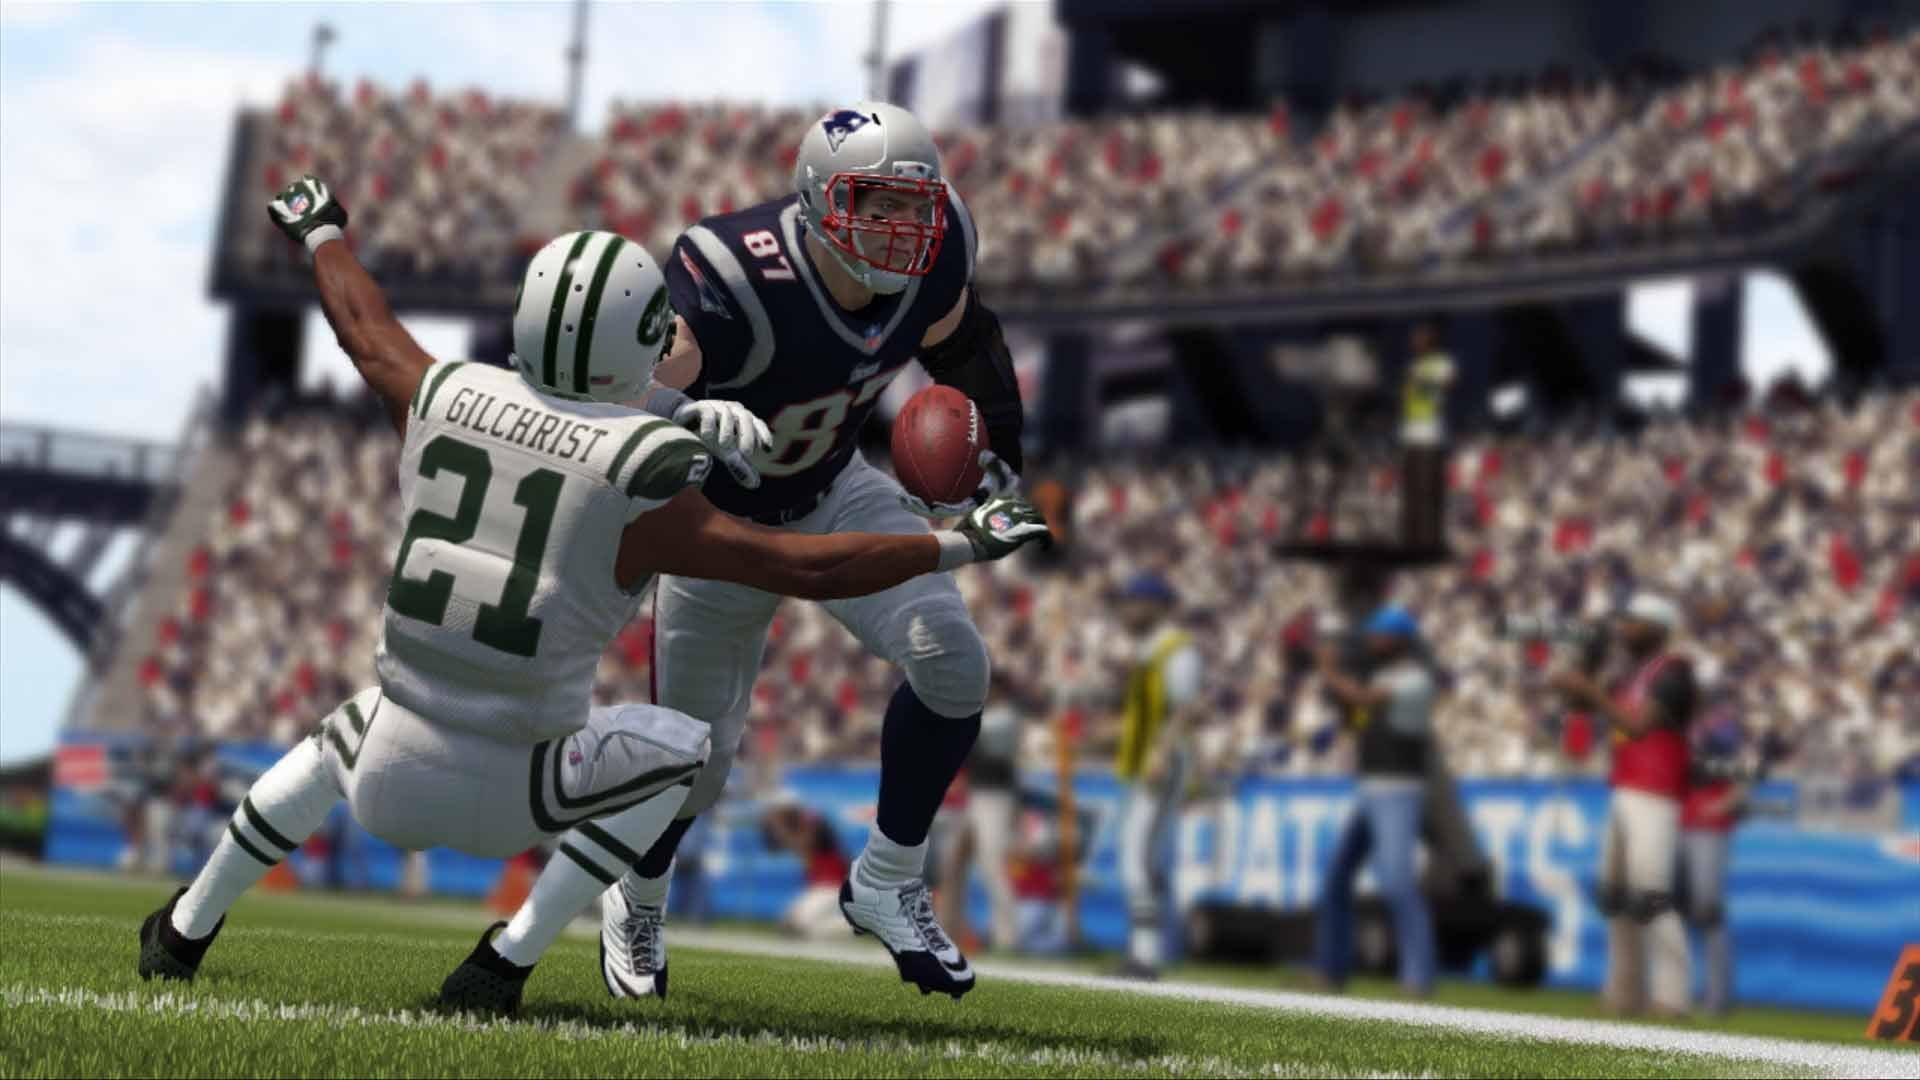 Madden NFL 17 - Standard Edition - PlayStation 4 by Electronic Arts (Image #2)